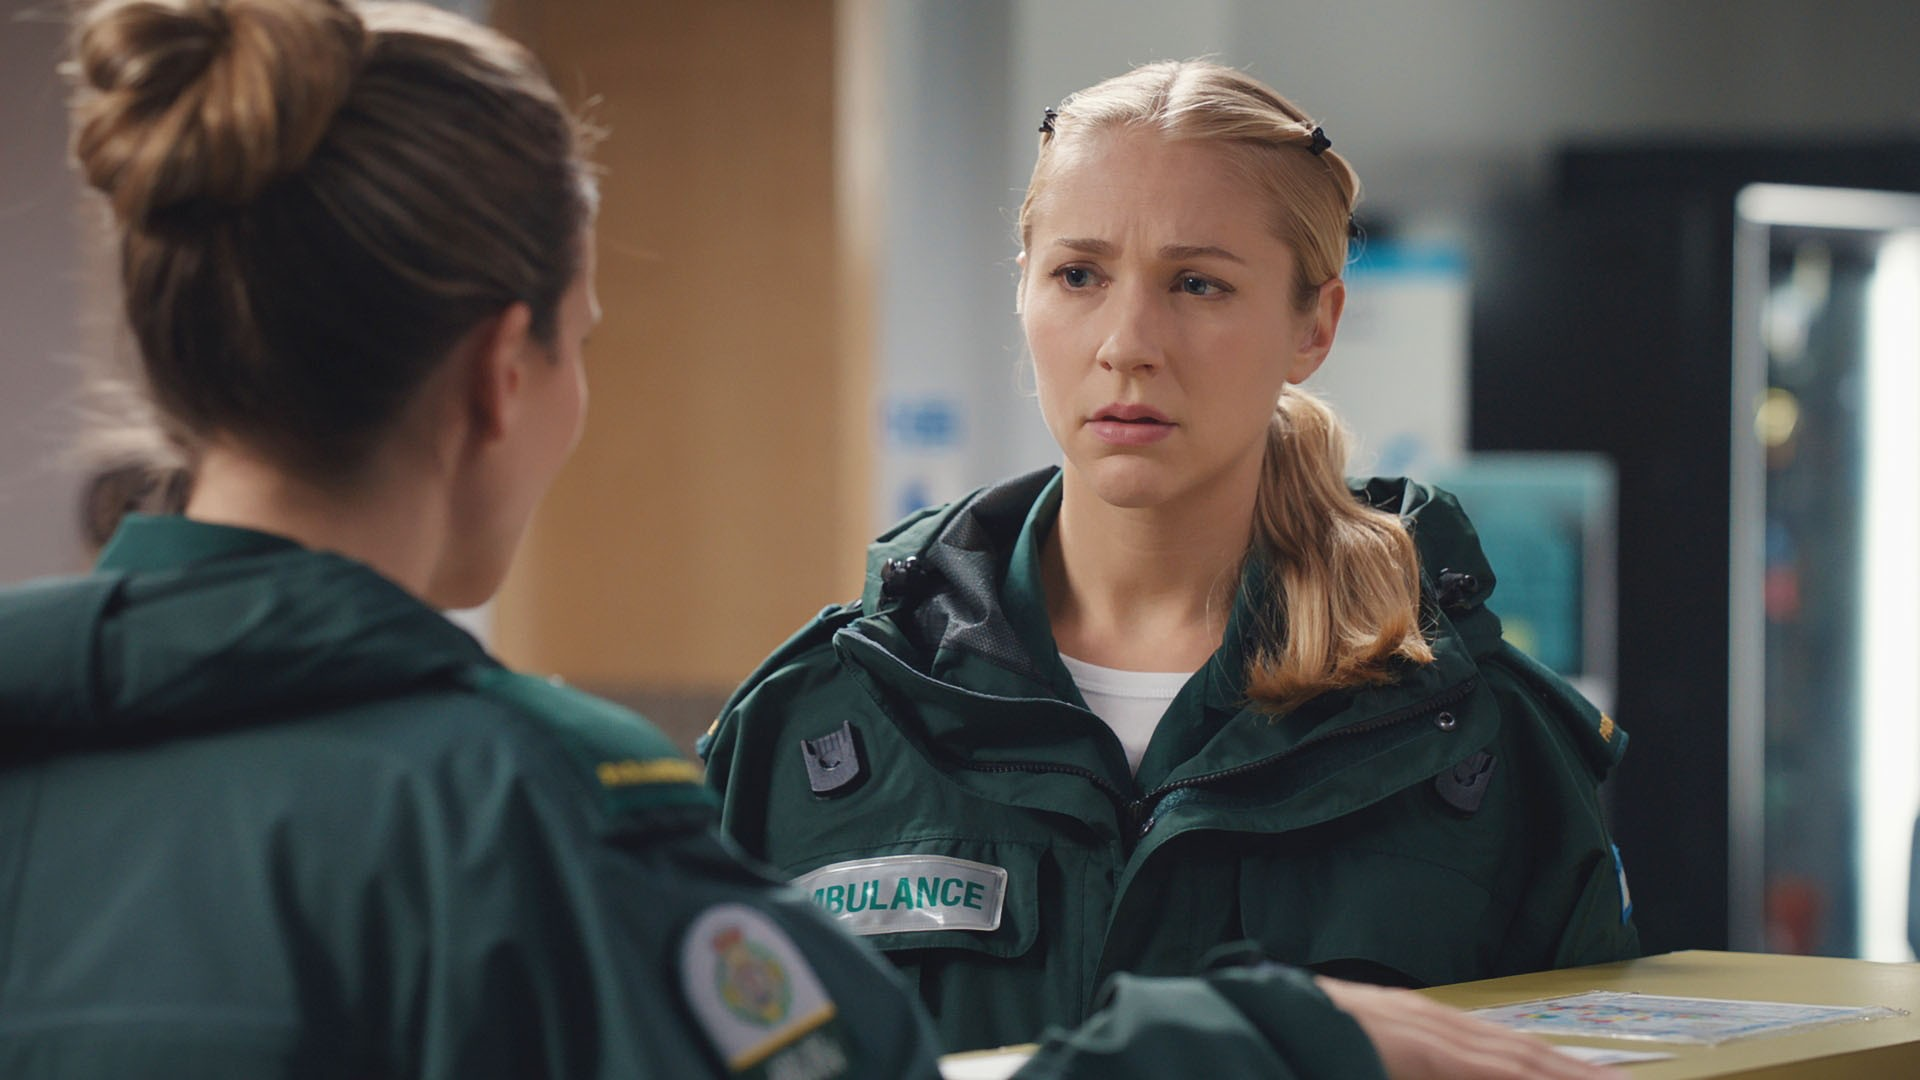 WARNING: Embargoed for publication until 00:00:01 on 17/07/2018 - Programme Name: Casualty - Series 32 - TX: 21/07/2018 - Episode:  Casualty - Series 32 - Episode 42 (No. 42) - Picture Shows:  Sam Nicholls (CHARLOTTE SALT), Ruby Sparks (MADDIE HILL) - (C) BBC - Photographer: n/a